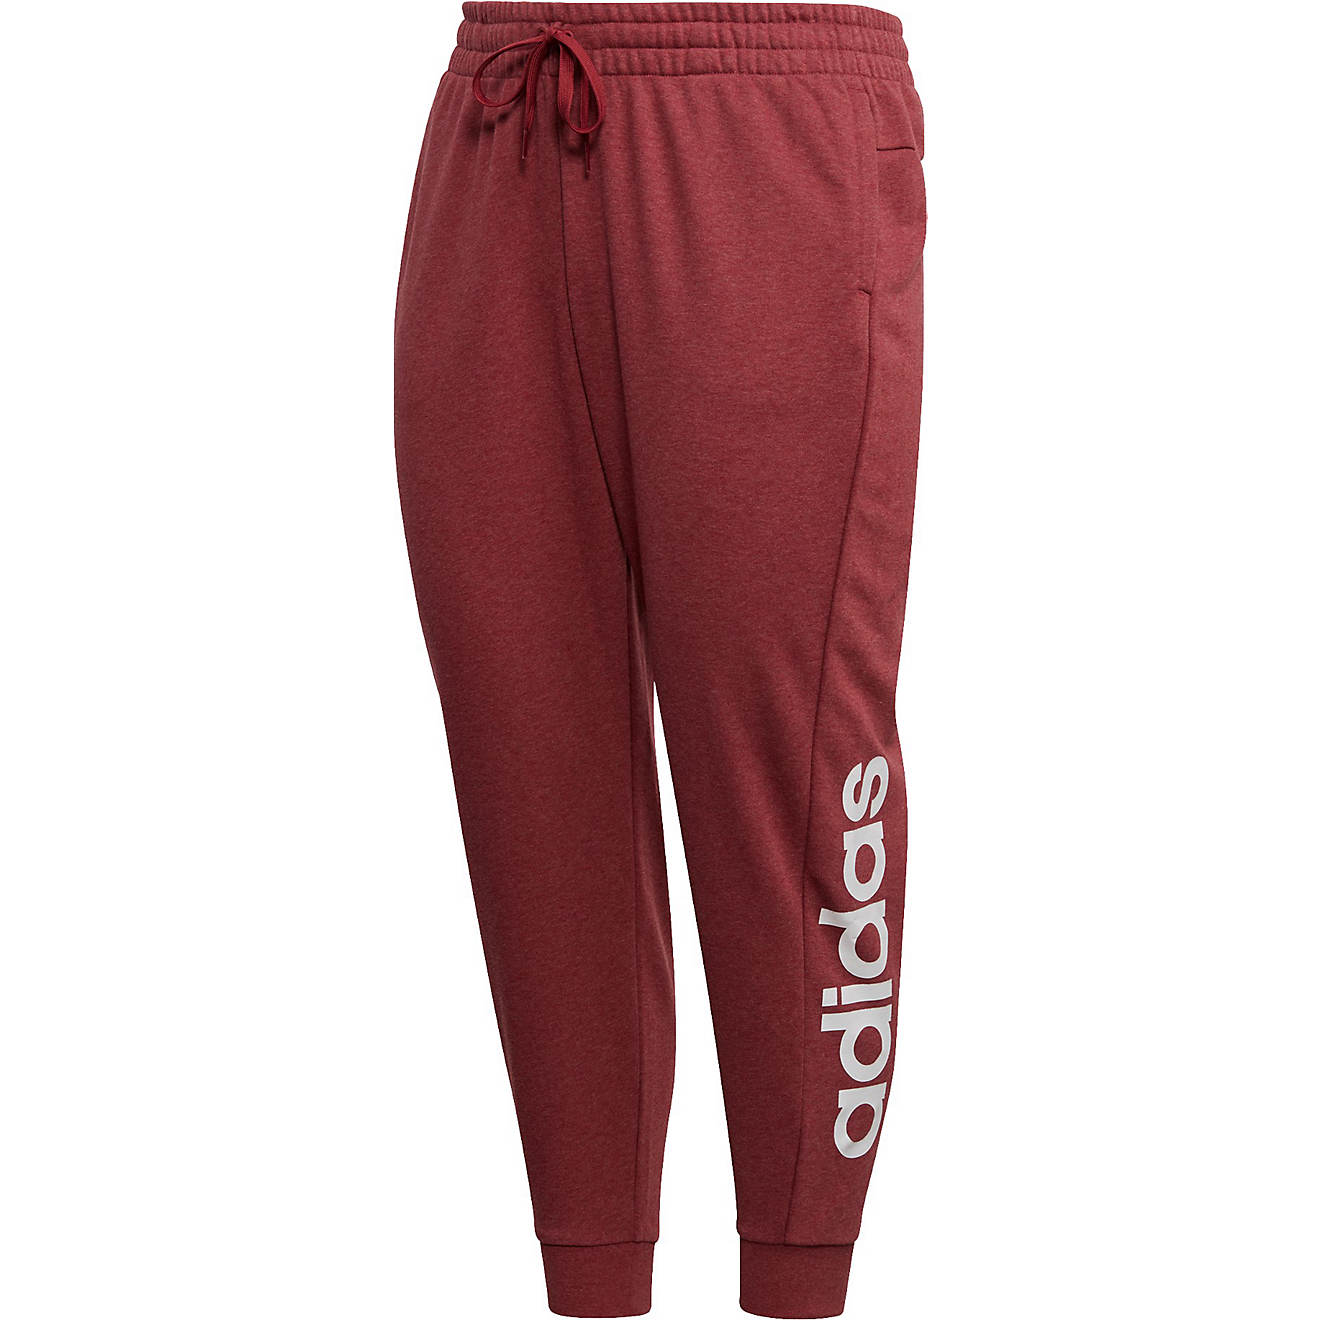 adidas Women's Essentials Plus Size Jogger Pants